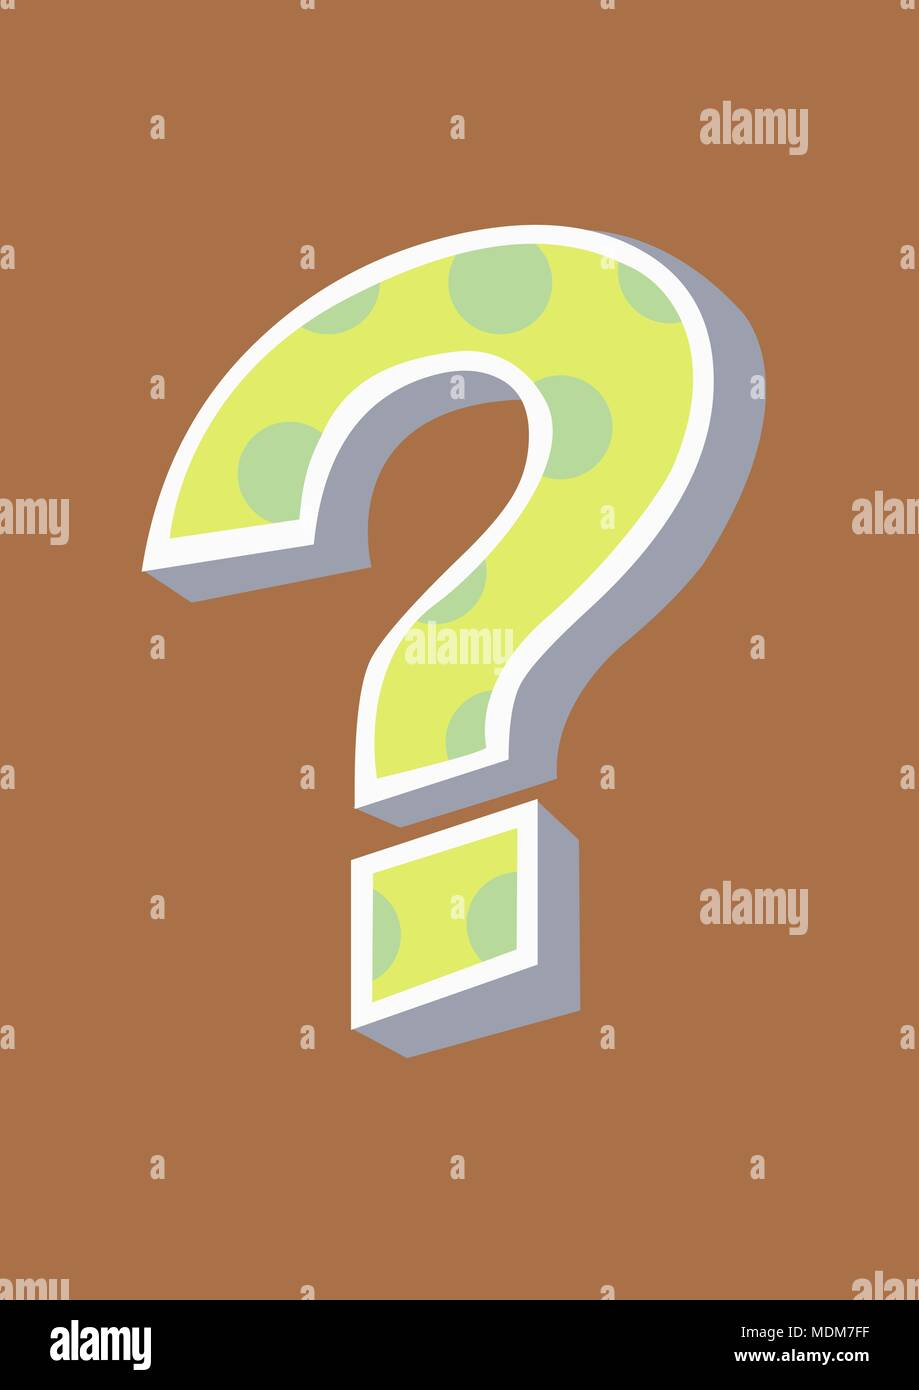 funky cool question mark - Stock Image